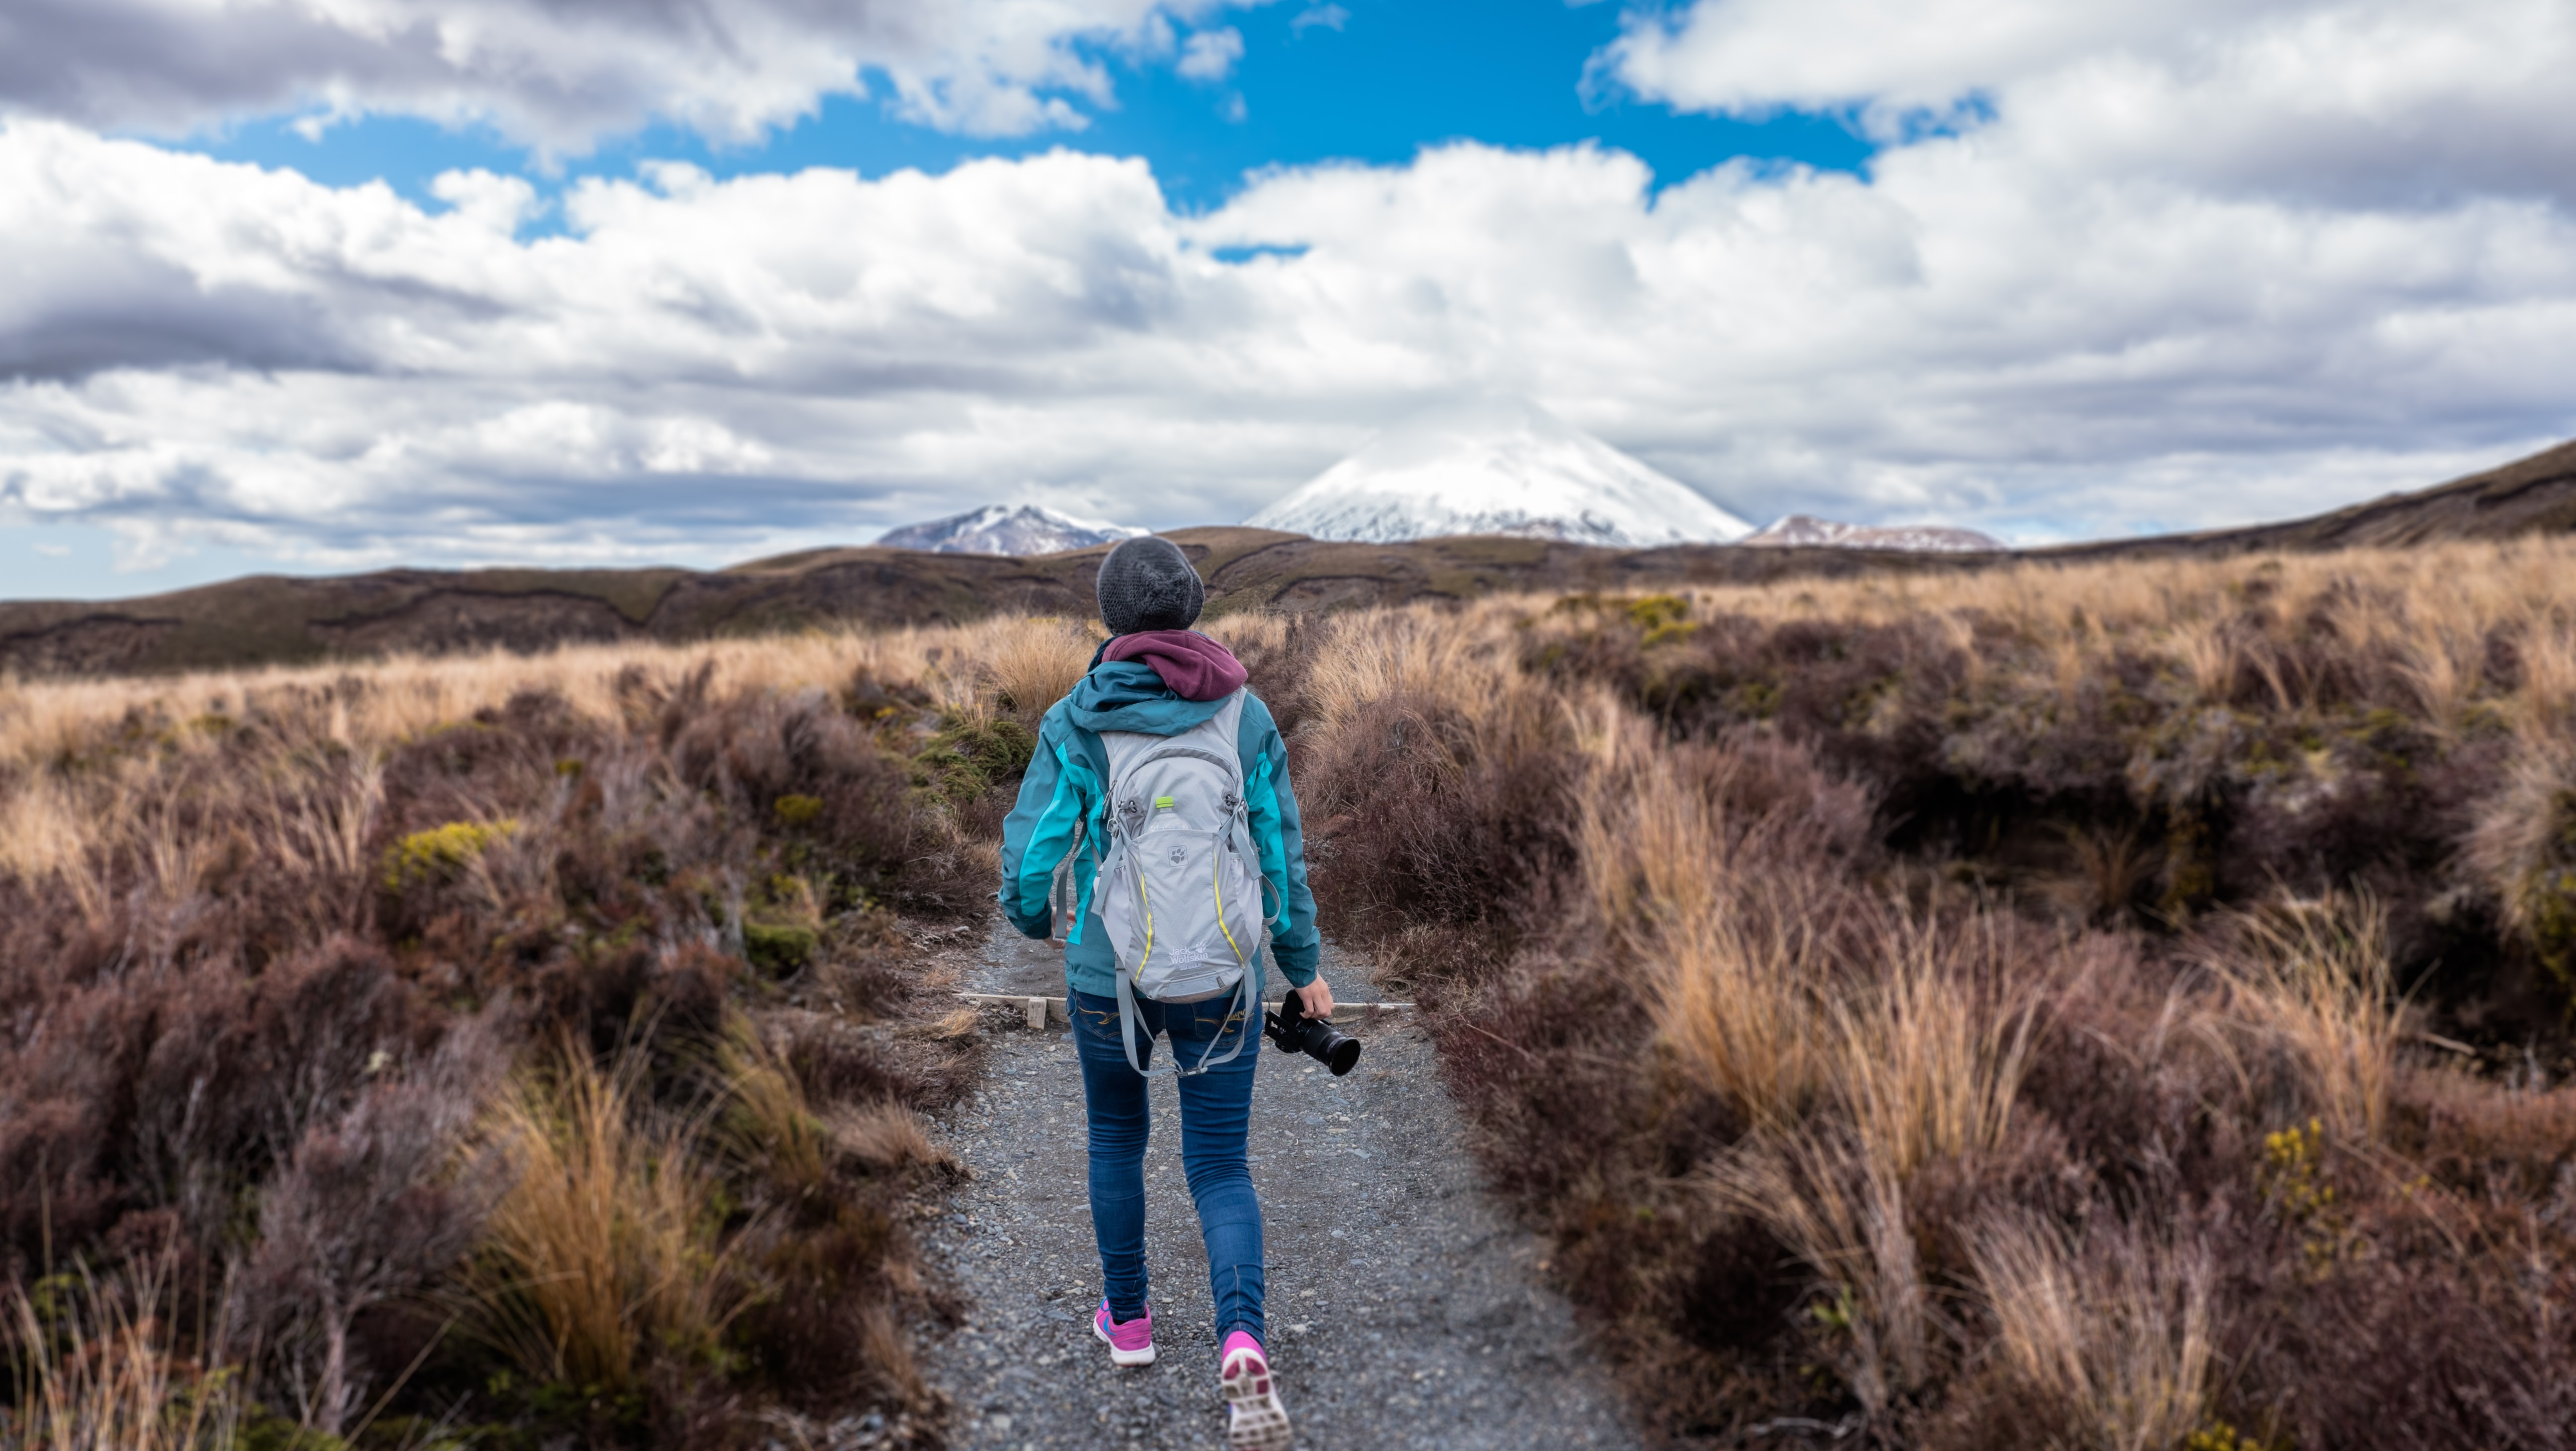 Person in jacket with backpack and camera hiking in Tongariro National Park near snowcapped mountains